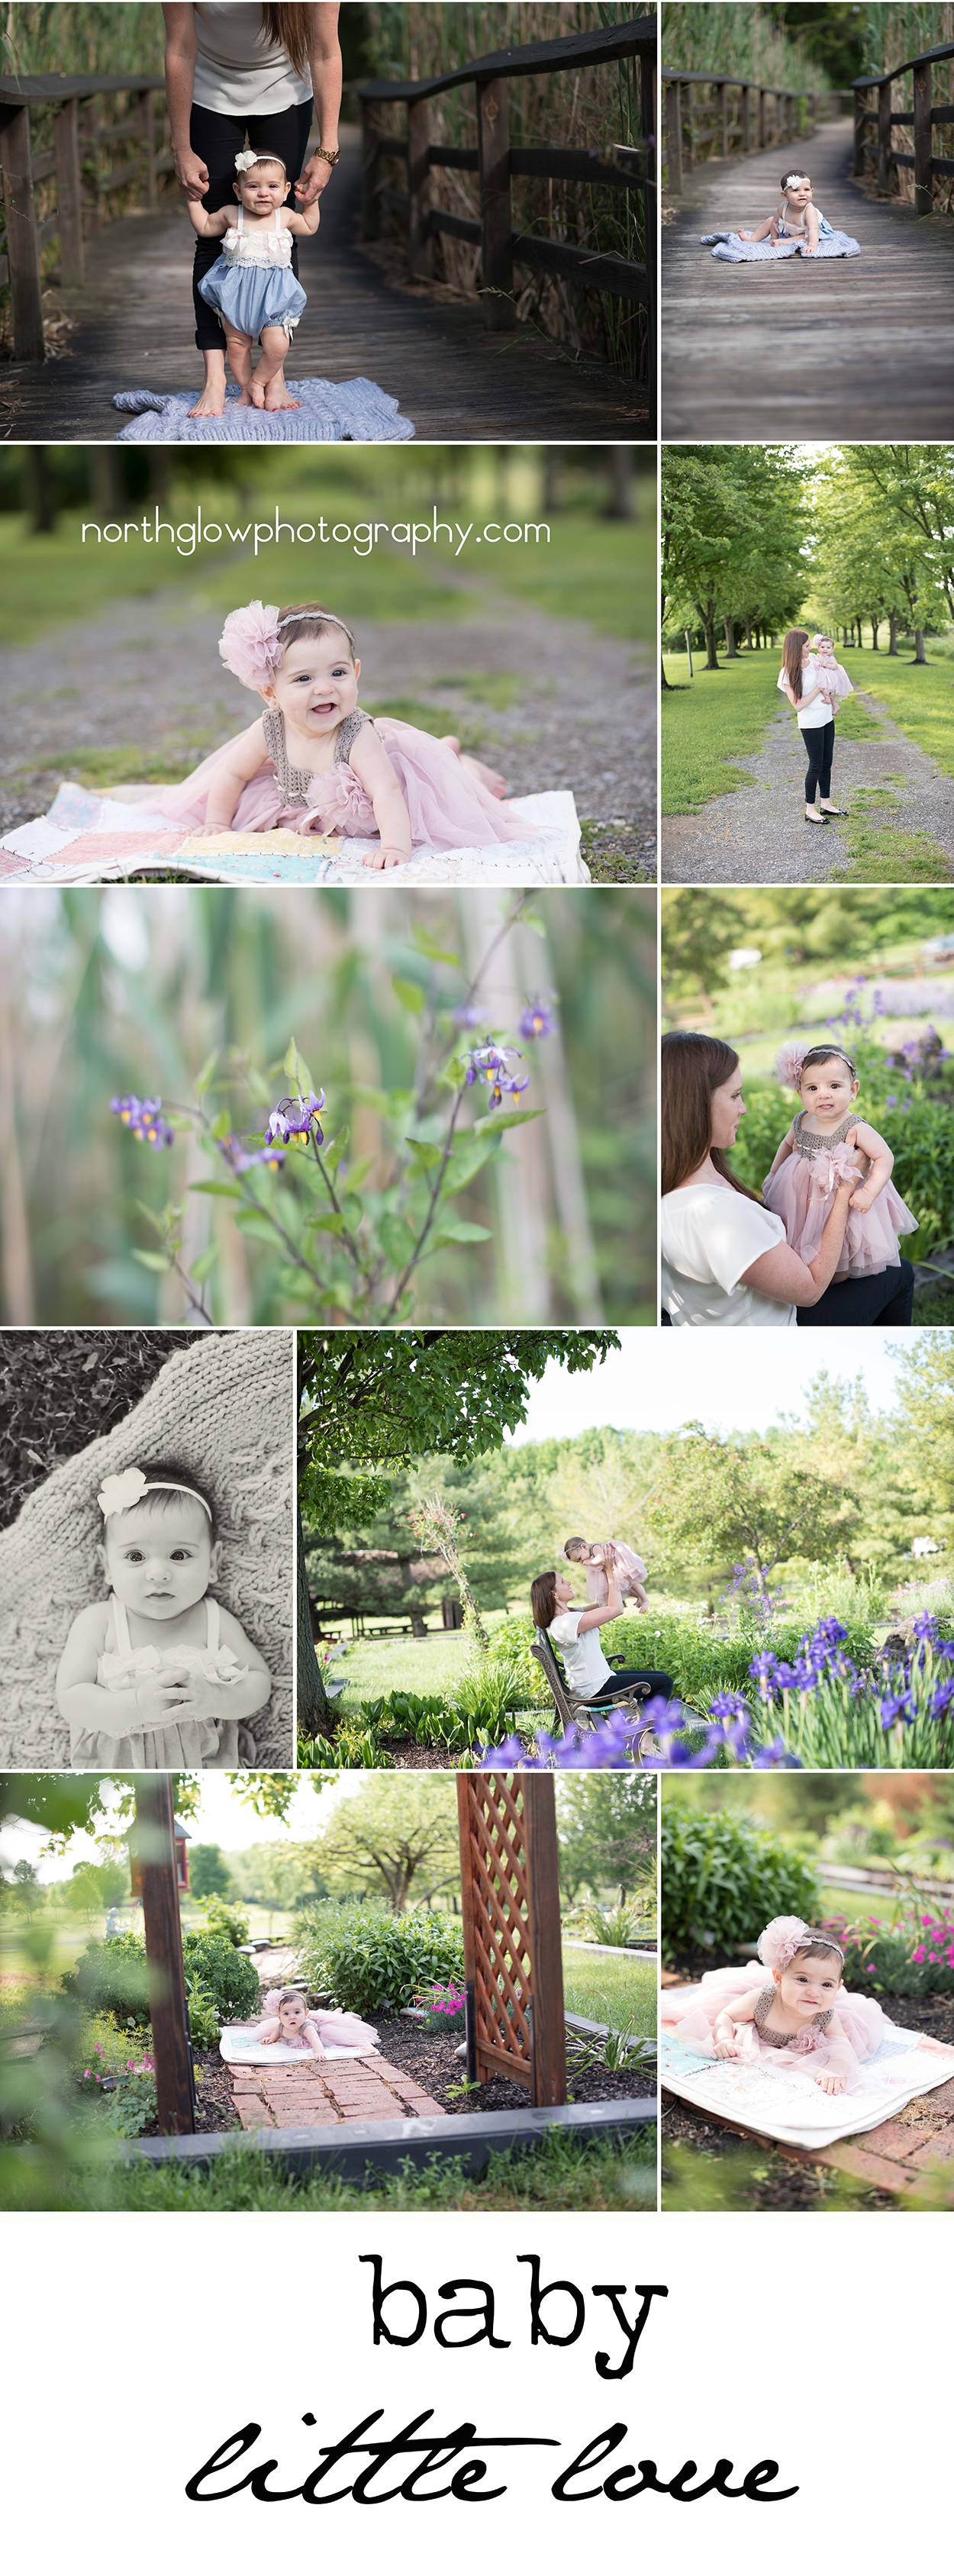 Sana 6 Months | NorthGlow Photography